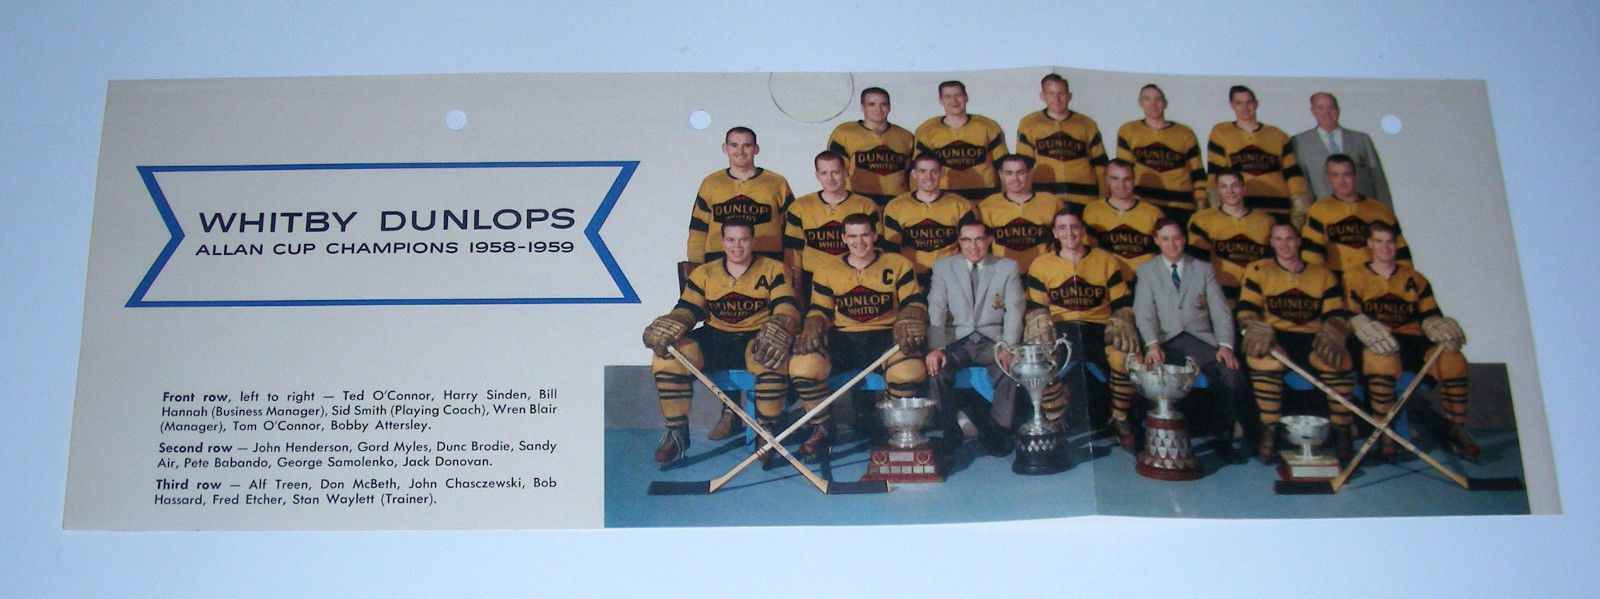 1958-59 Whitby Dunlops Allan Cup CHAMPIONS Hockey Team Picture Vtg color